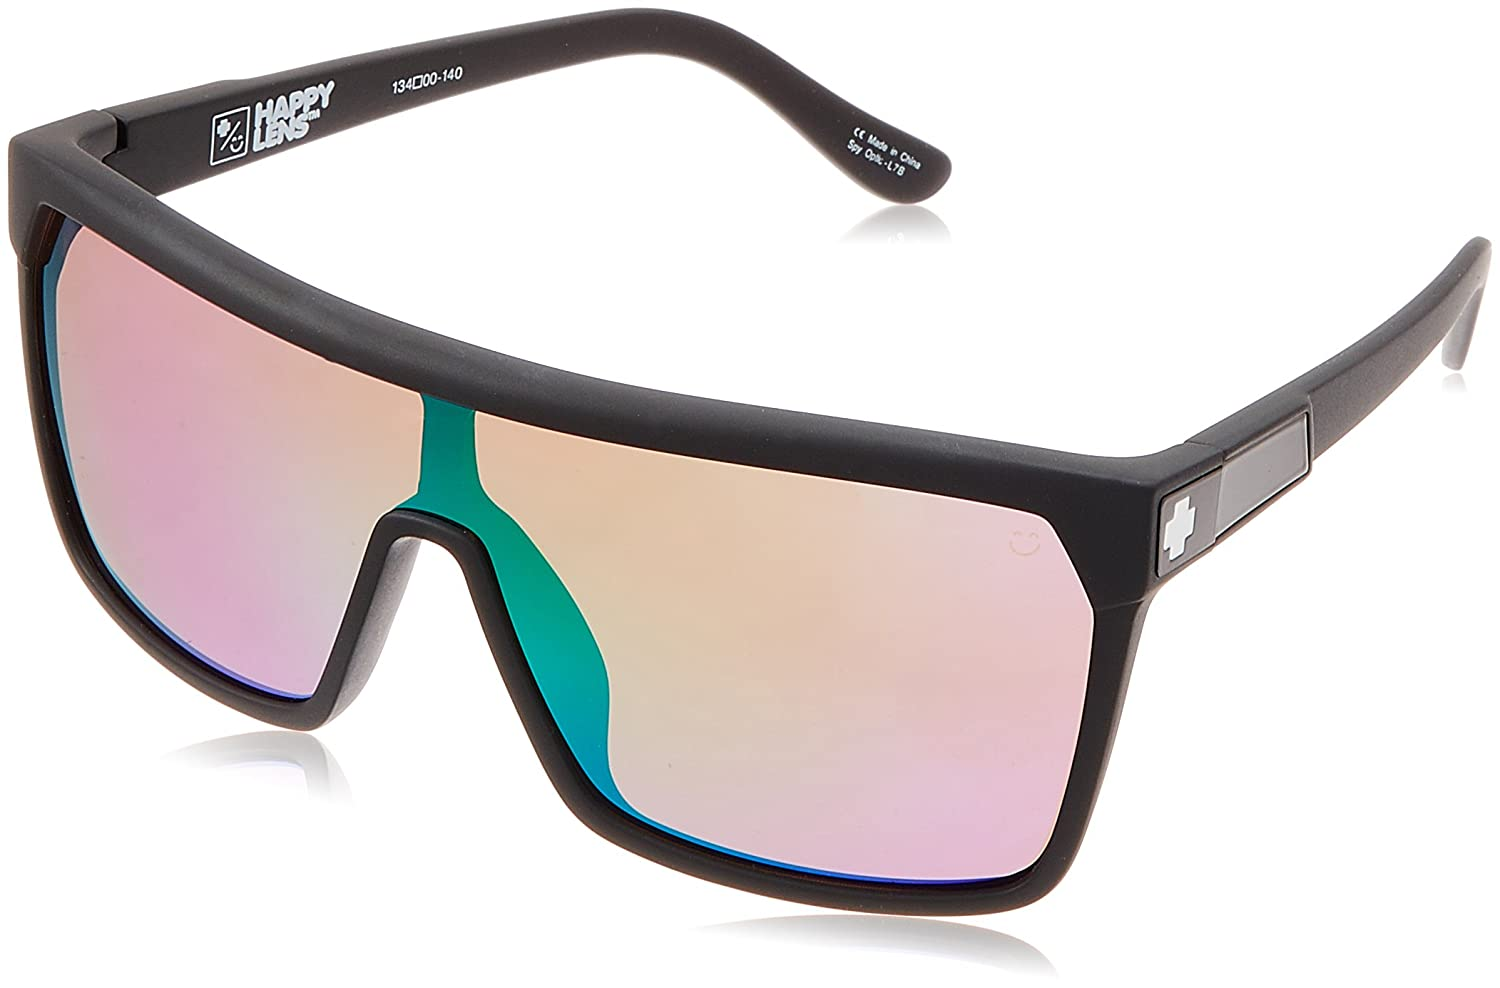 Spy Sonnenbrille FLYNN, happy bronze/green spectra, 670323374225